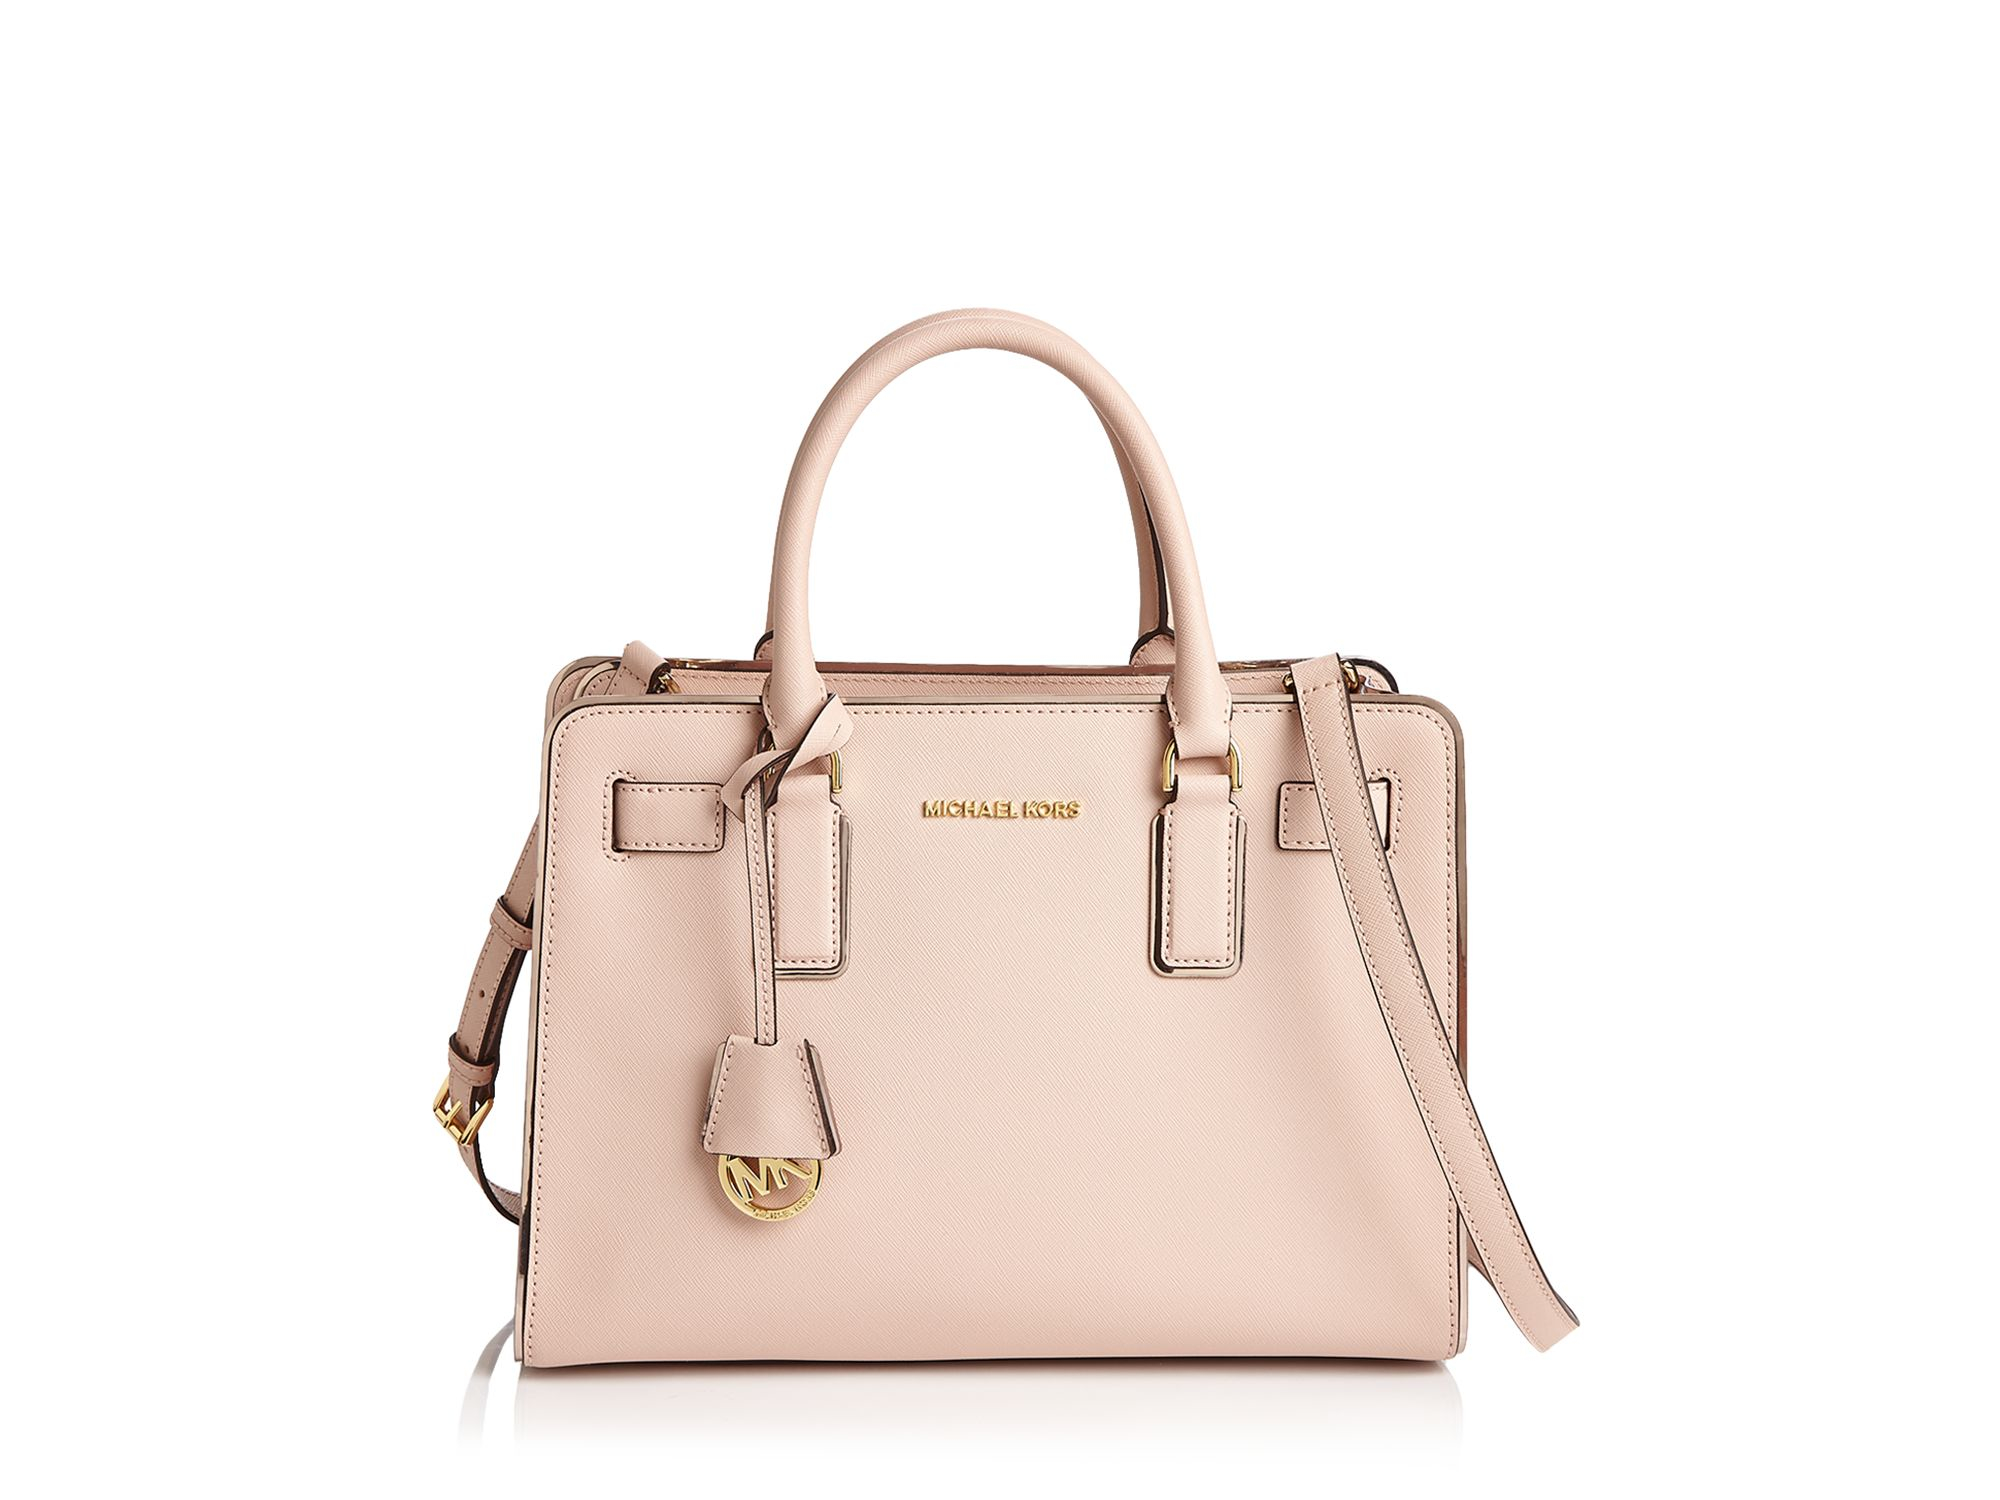 7deb6ed7518f37 ... hot lyst michael michael kors dillon saffiano leather satchel in pink  4cdc3 2883f ...